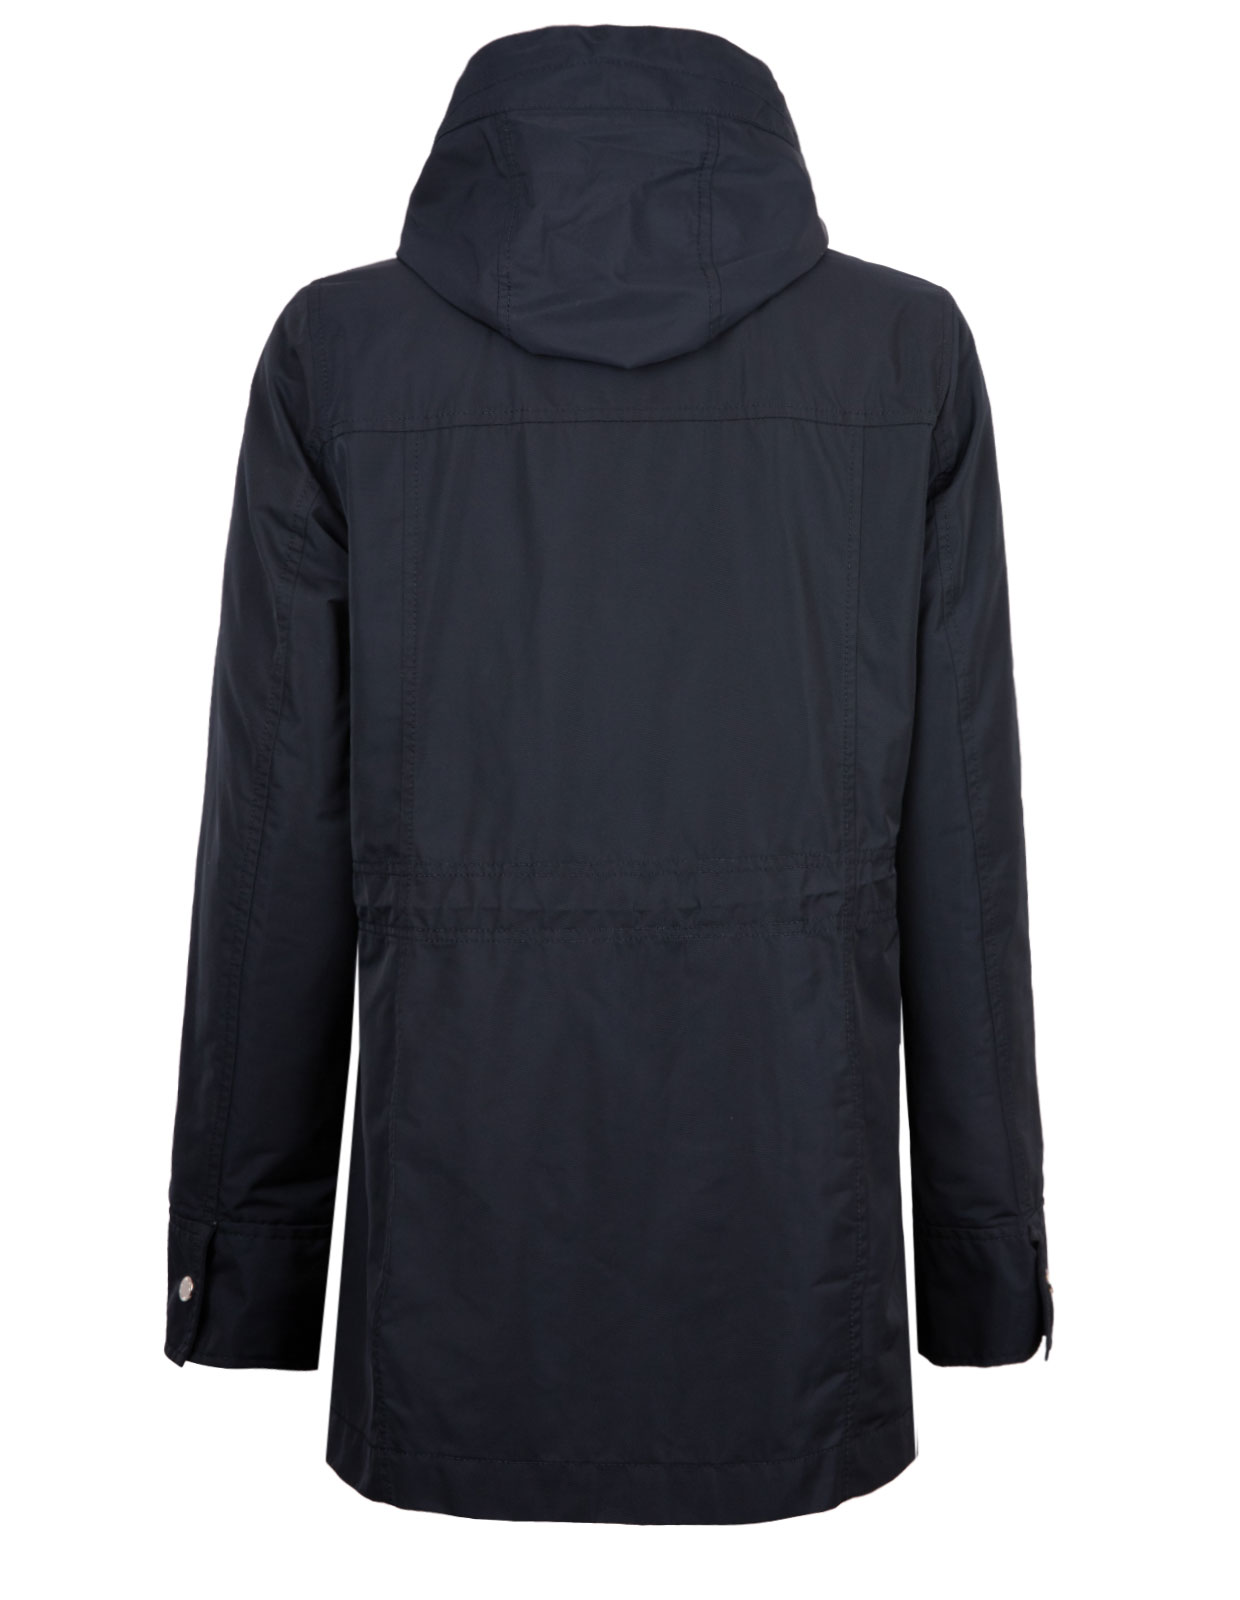 Functionjacket Navy